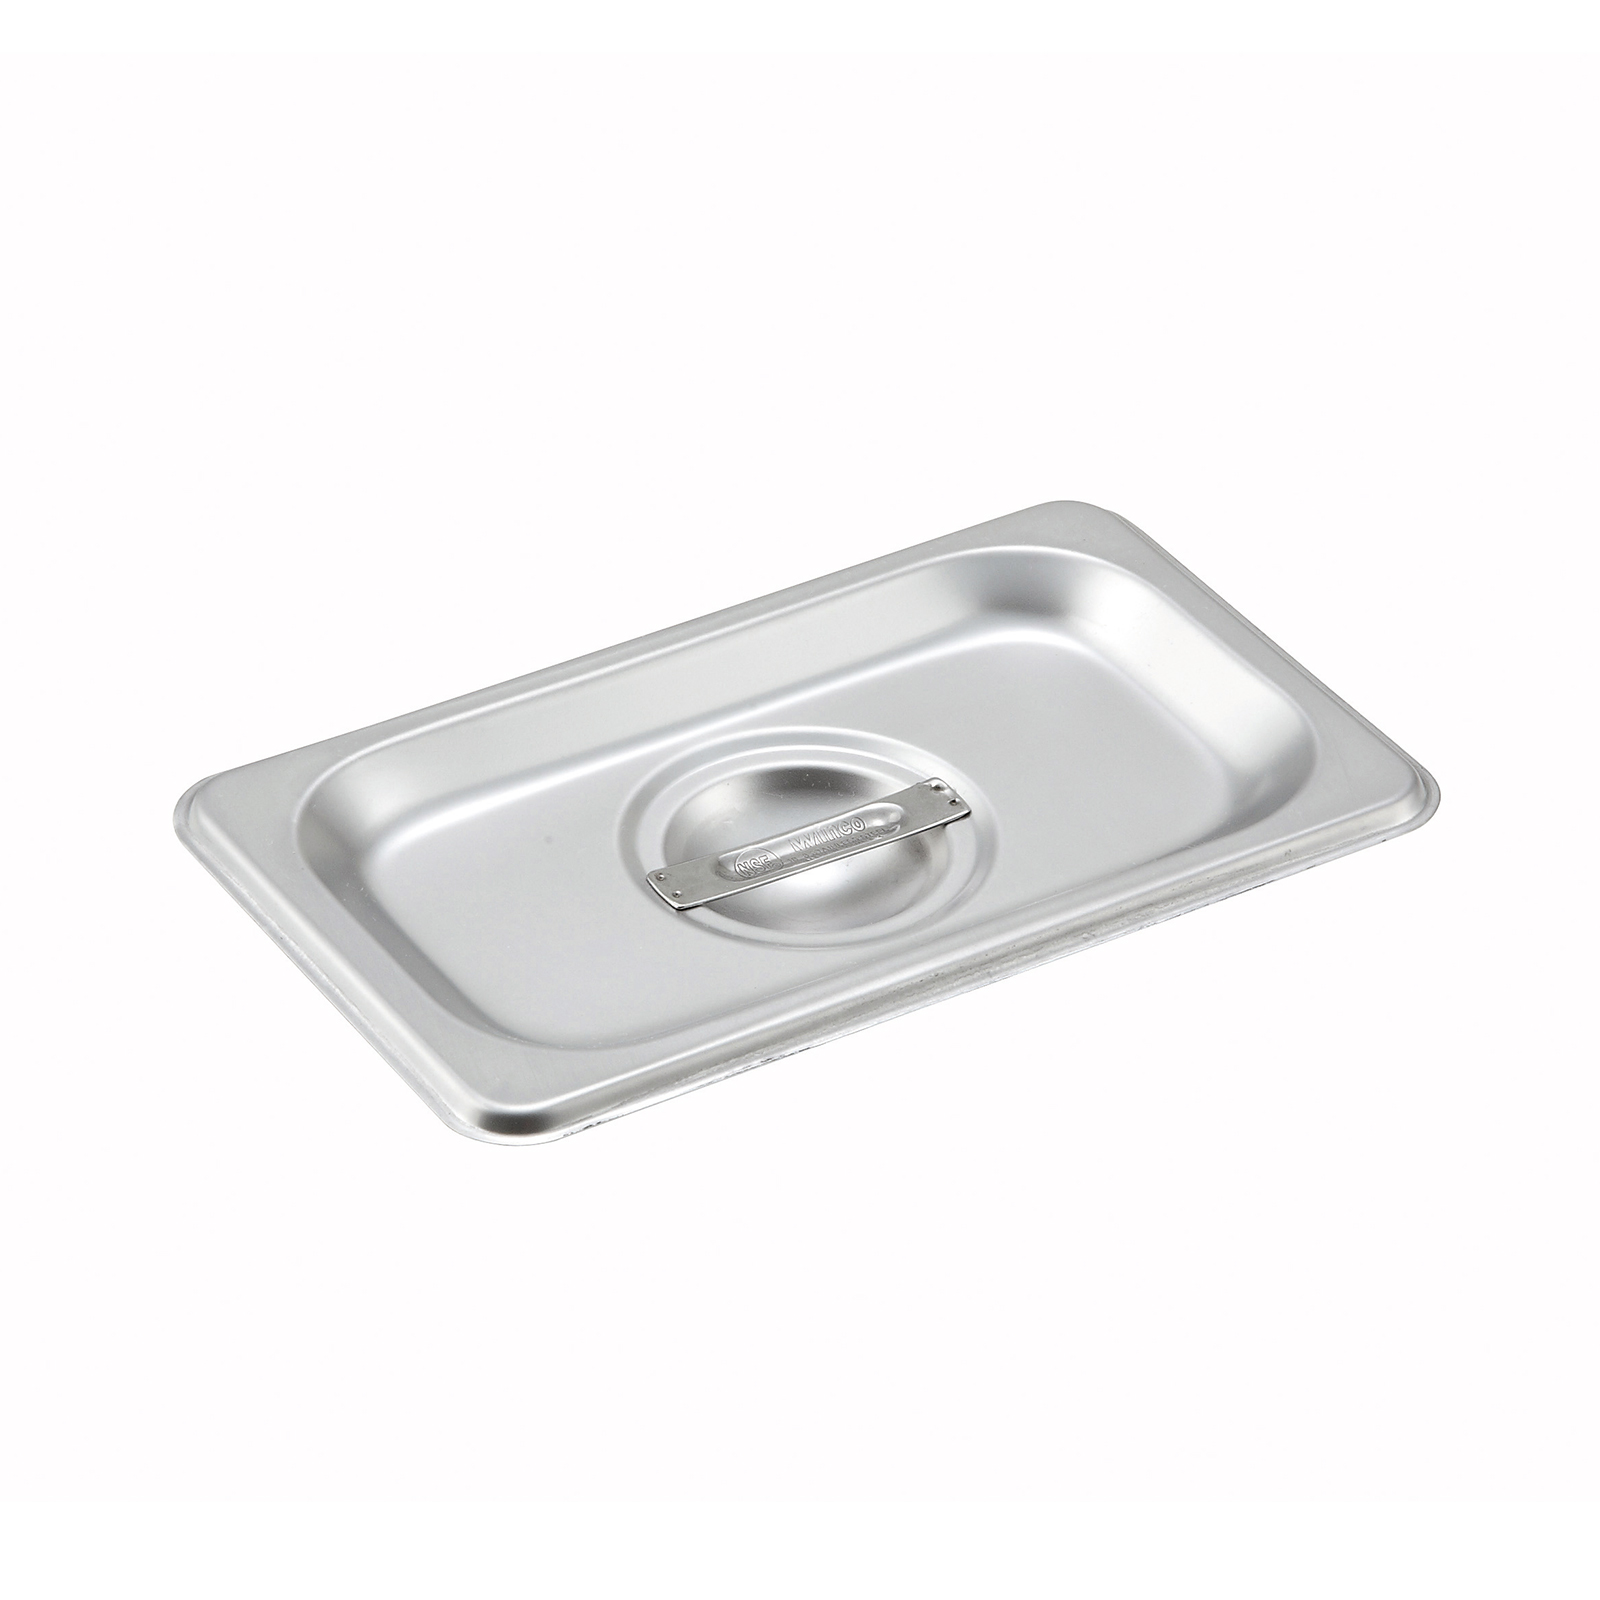 Winco SPCN steam table pan cover, stainless steel